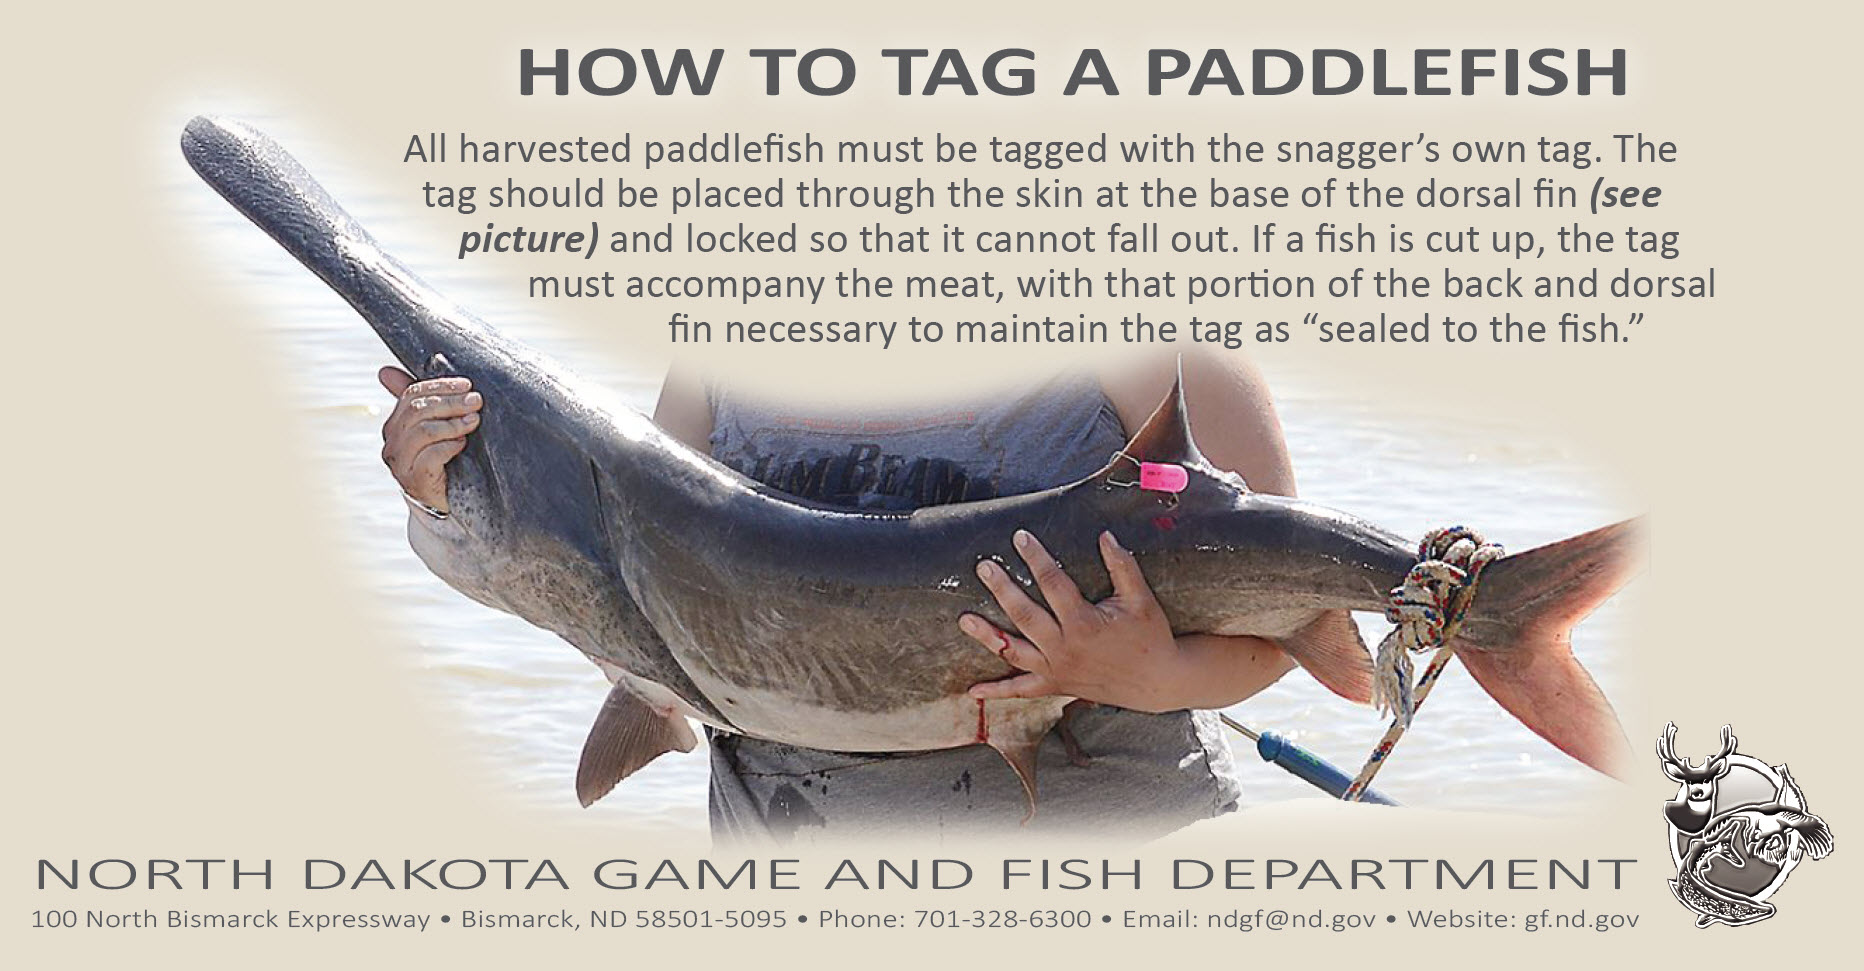 Paddlefish snagging season north dakota game and fish for North dakota fishing license